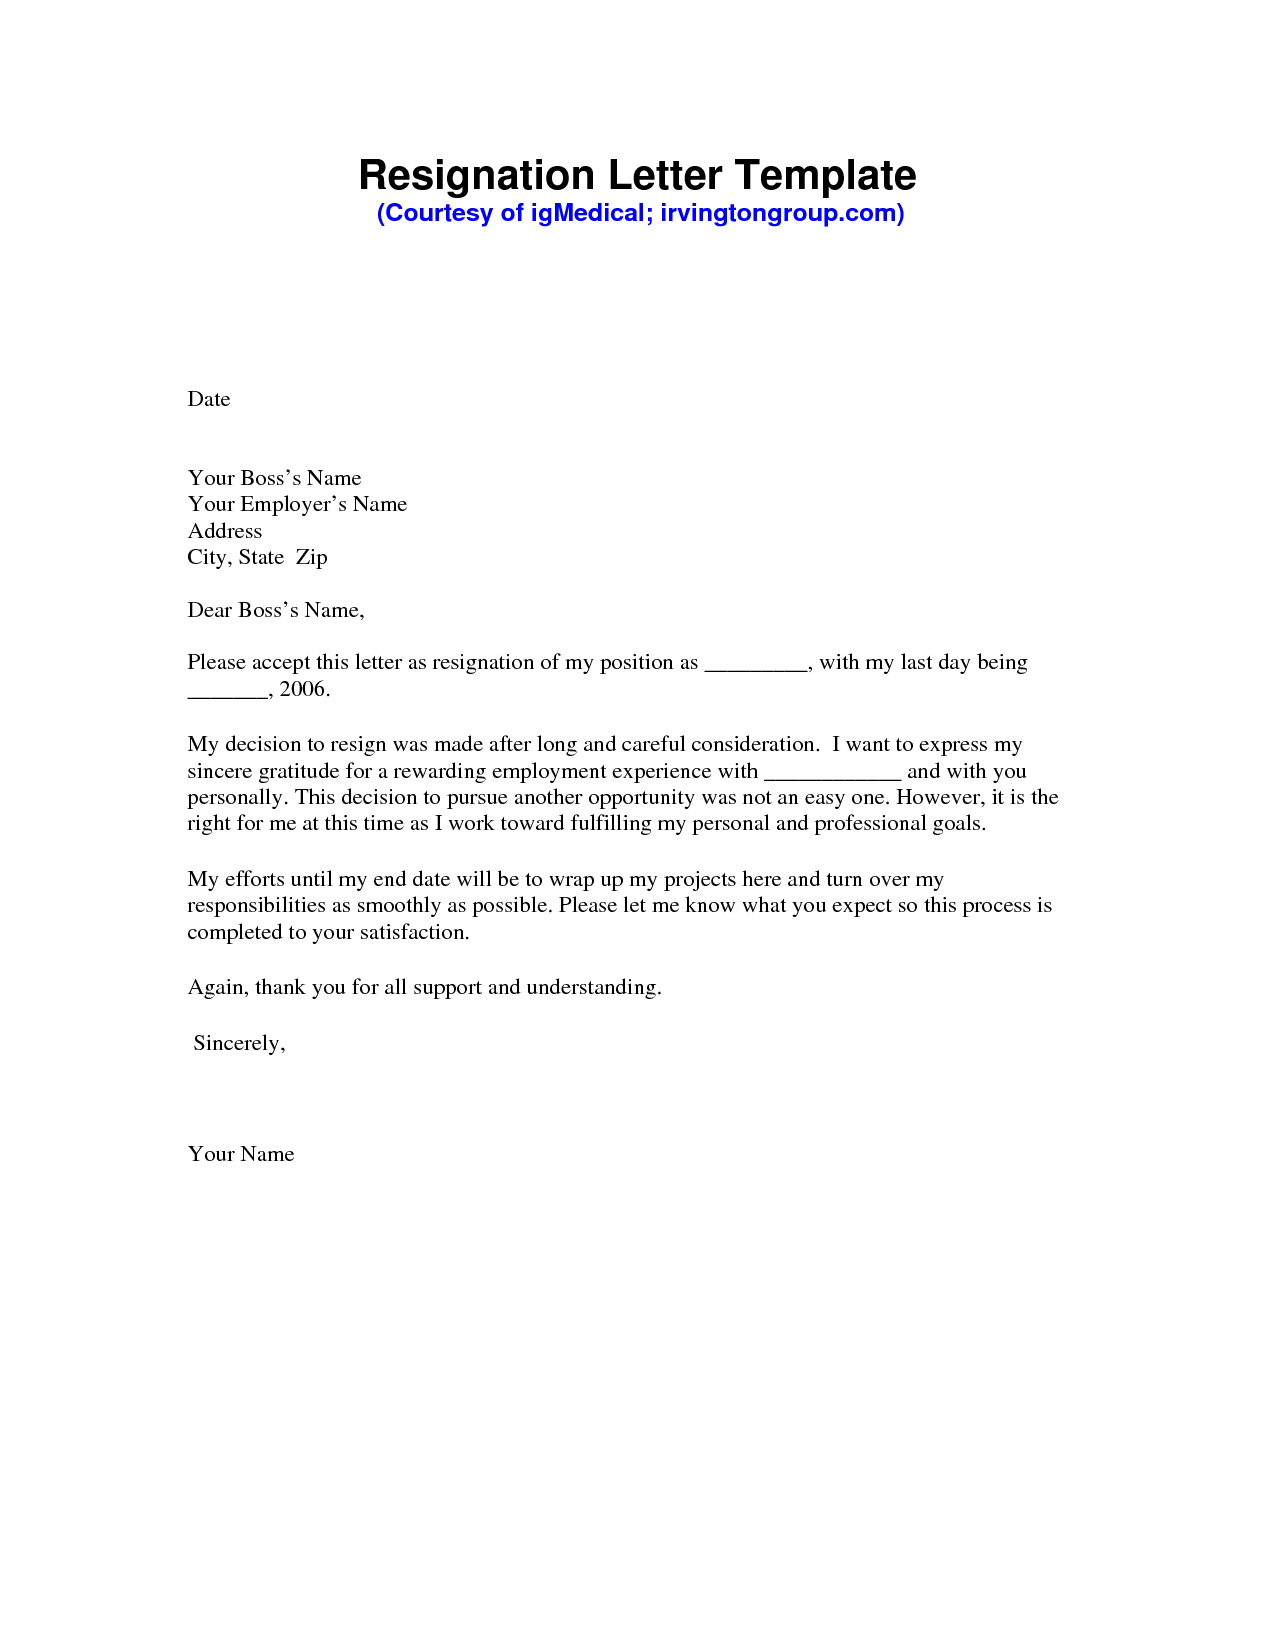 Resignation Letter Template Free Download